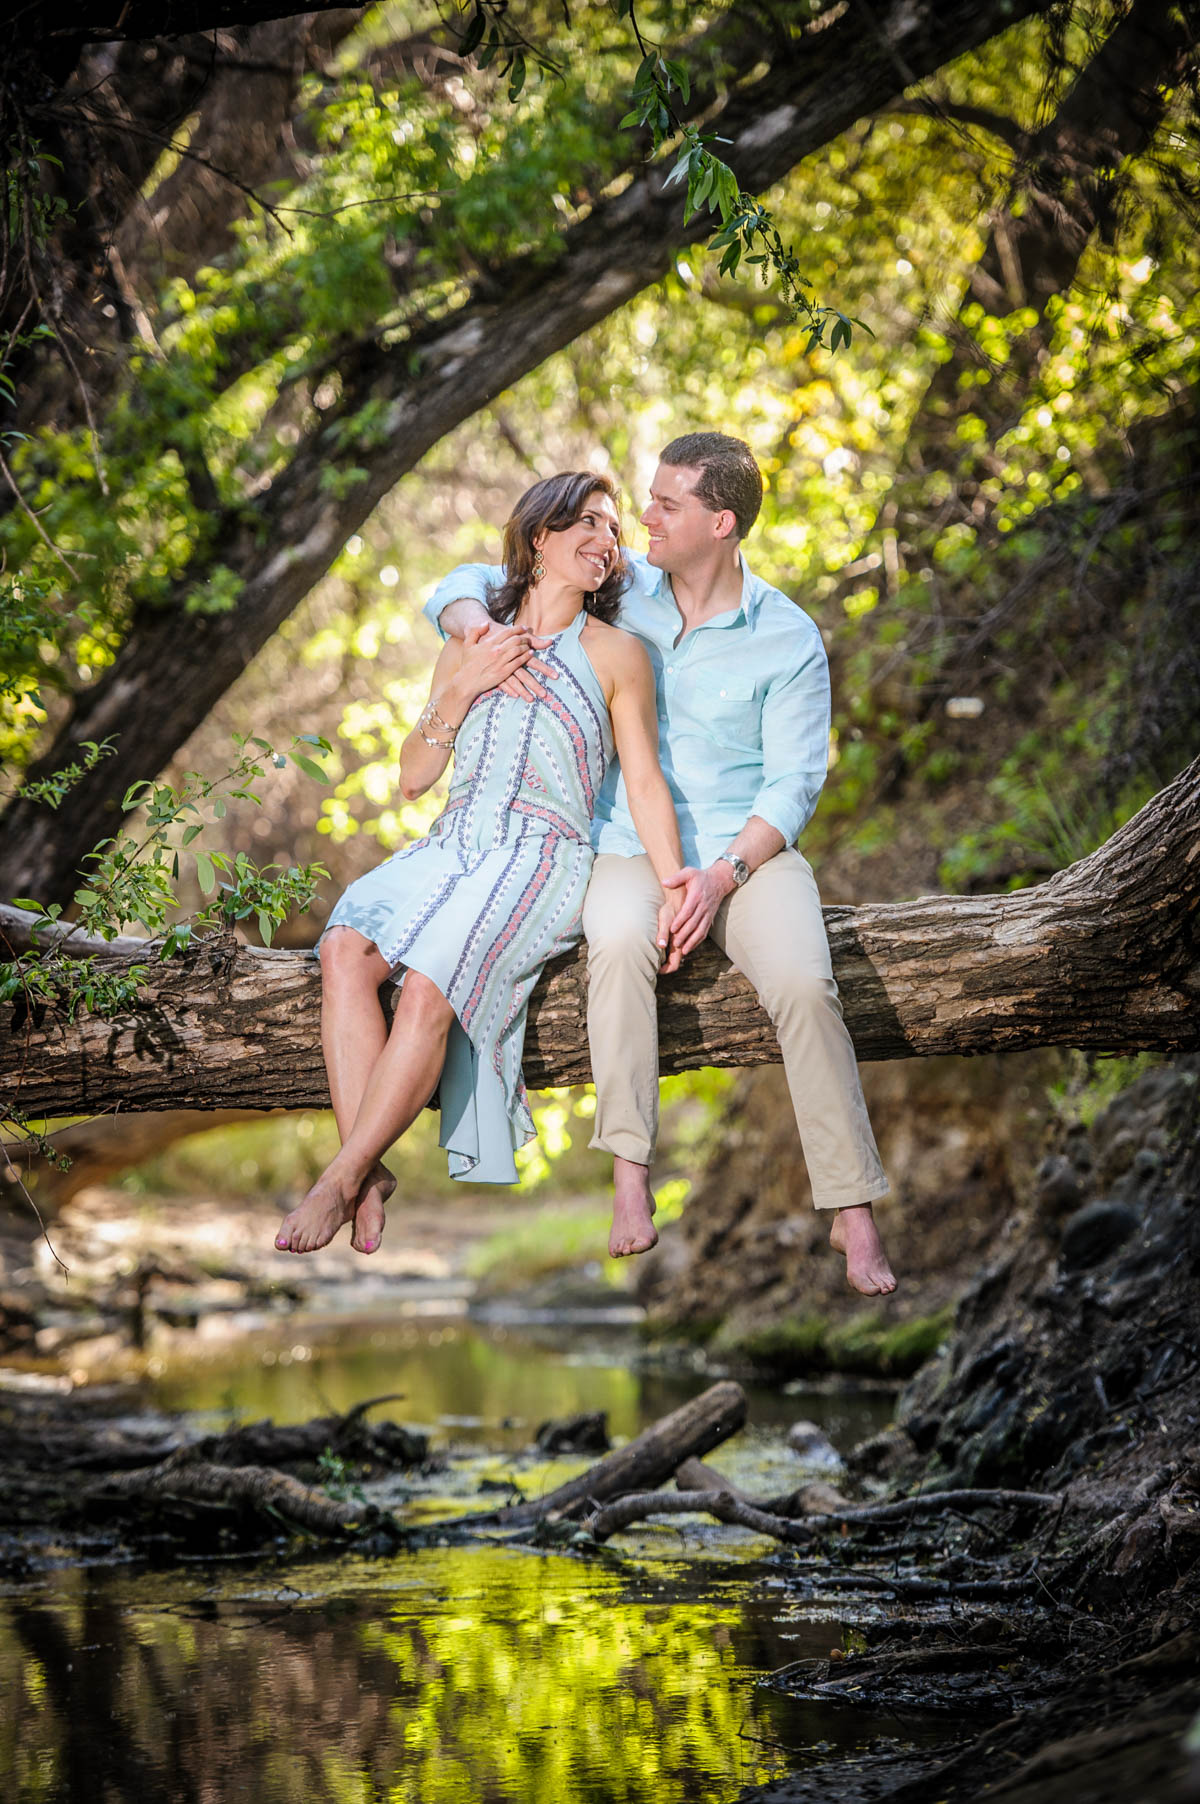 032715 Engagement Session-39